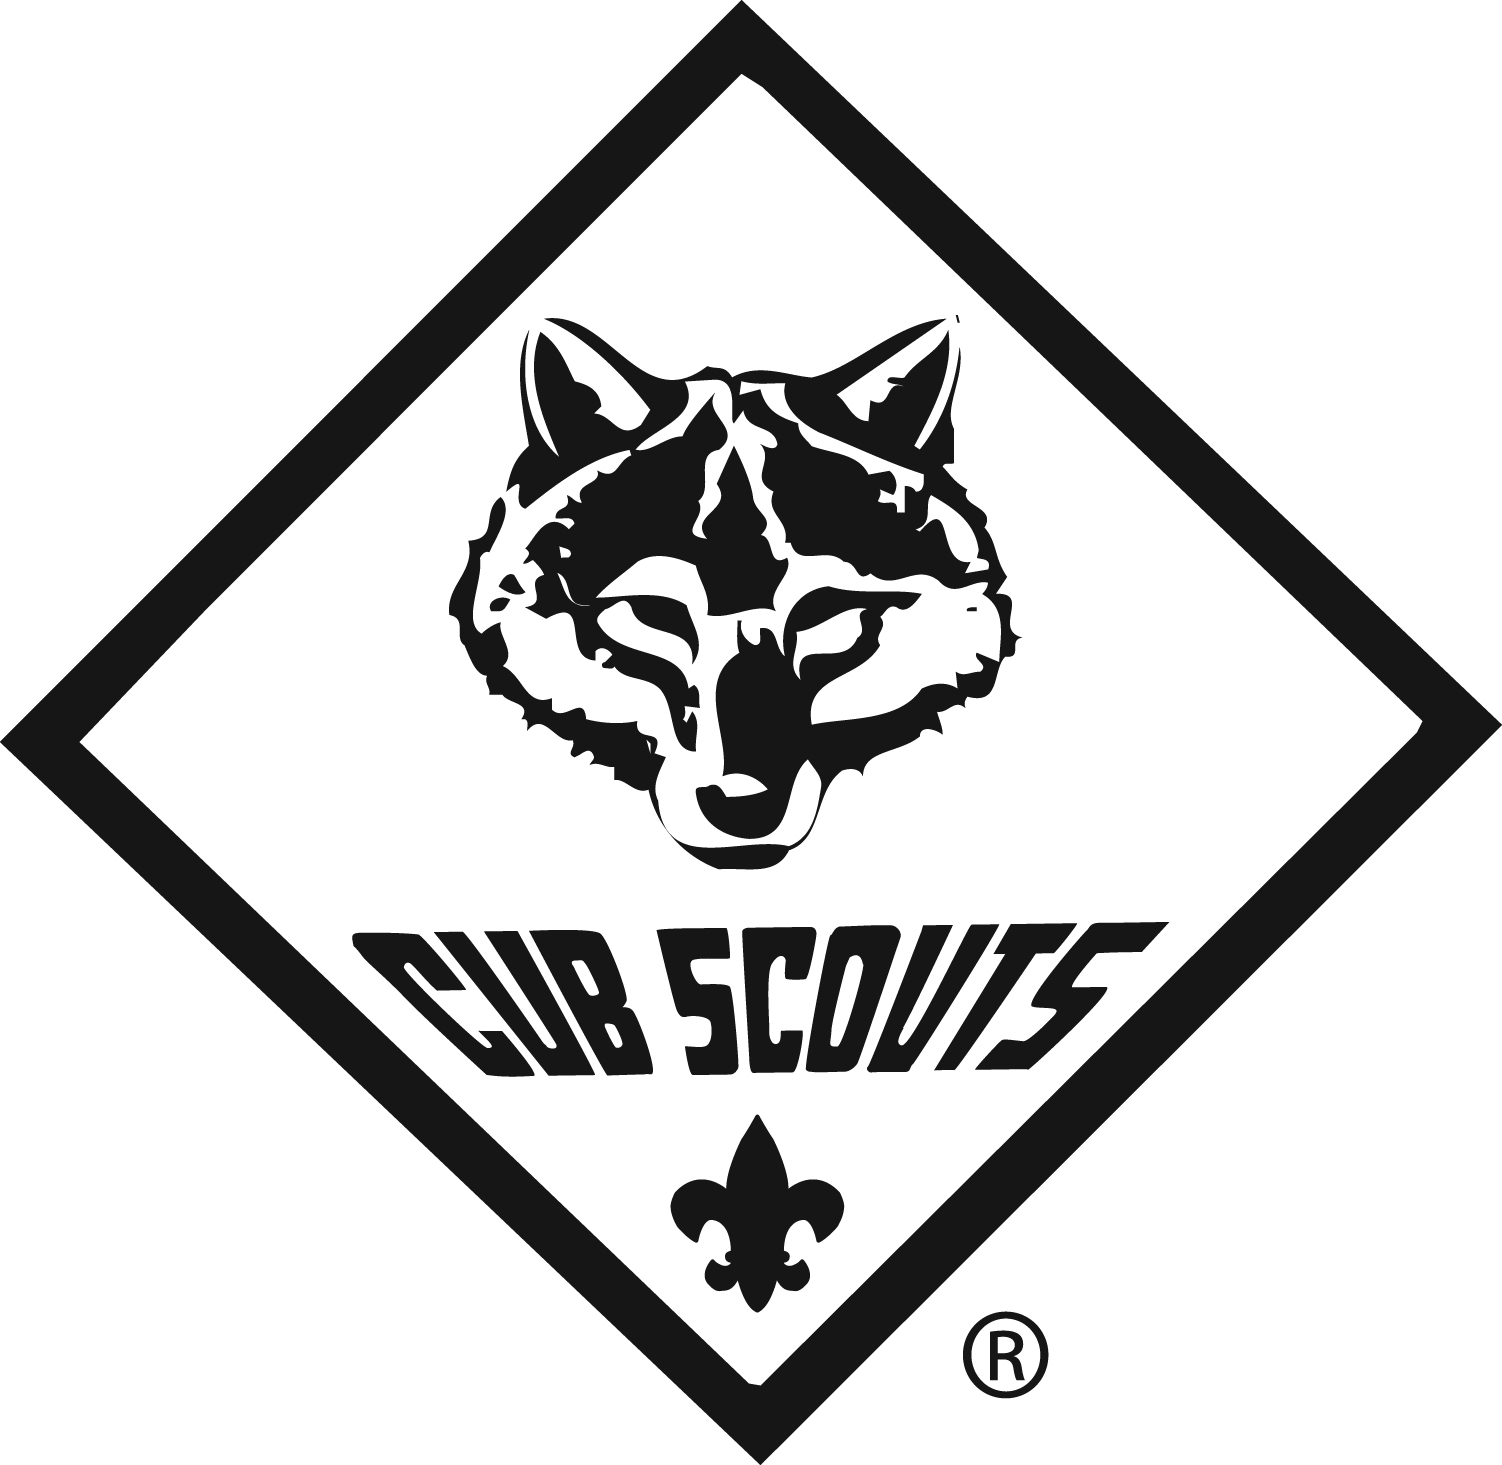 Black and white clipart boyscouts logo clip library Cub Scouts Clip Art & Cub Scouts Clip Art Clip Art Images ... clip library